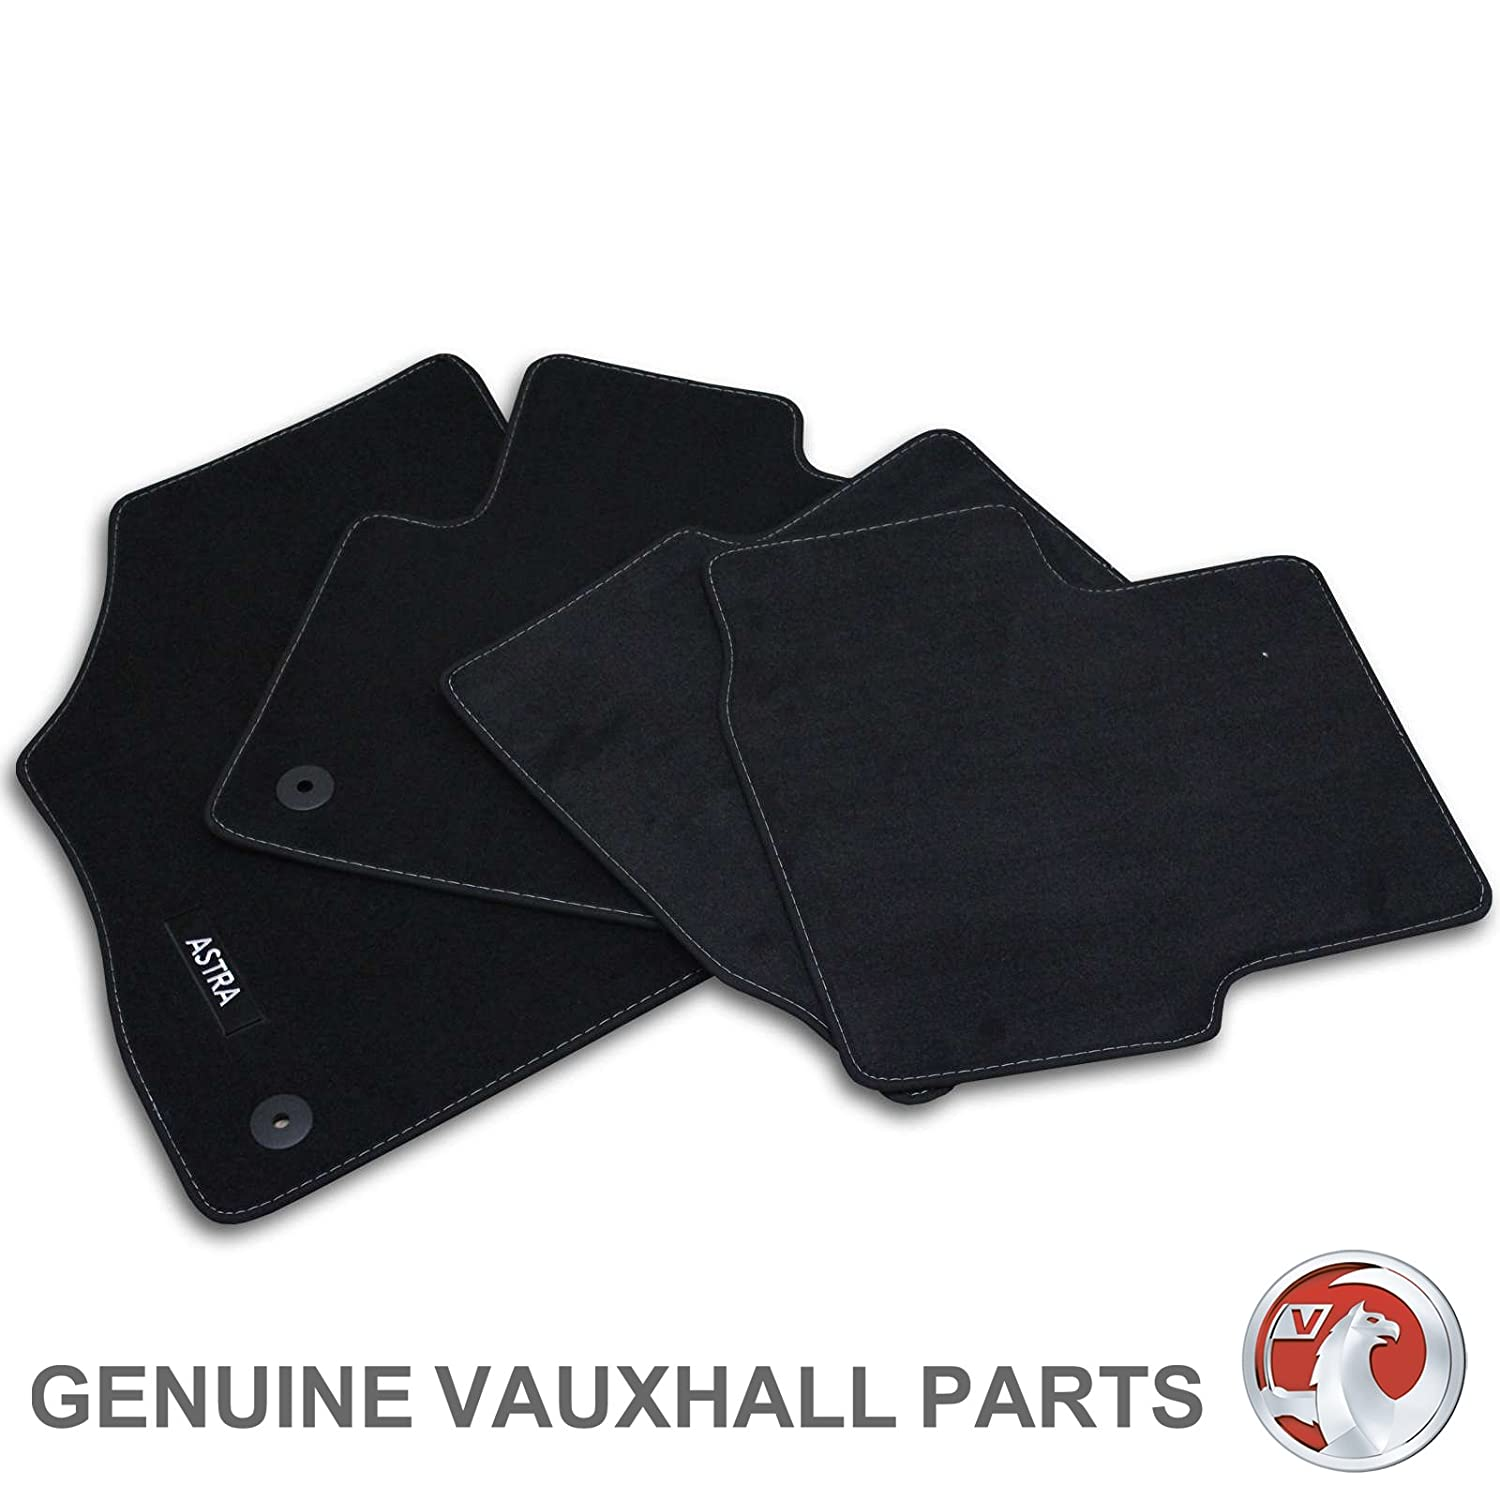 Genuine Vauxhall Astra K Carpet Mats - Black UKCVA026